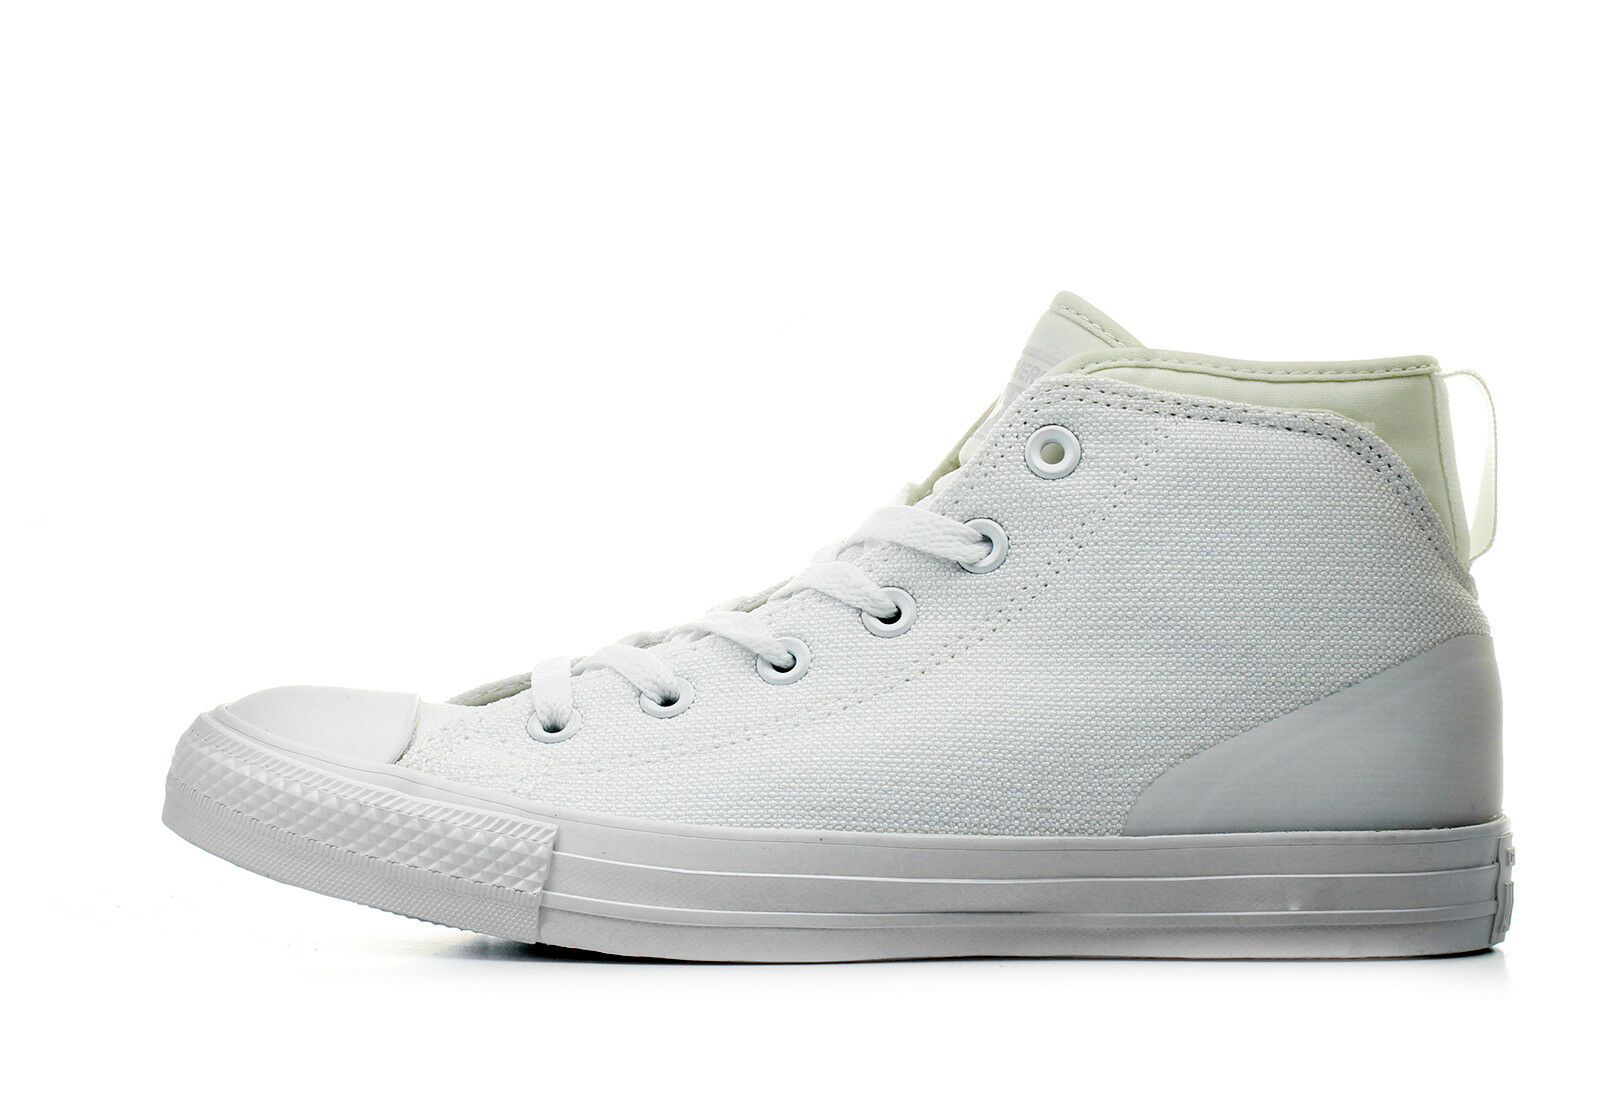 CONVERSE CT CHUCK STREET TAYLOR ALL STAR SYDE STREET CHUCK MID MENS 155490C White NEW bba354